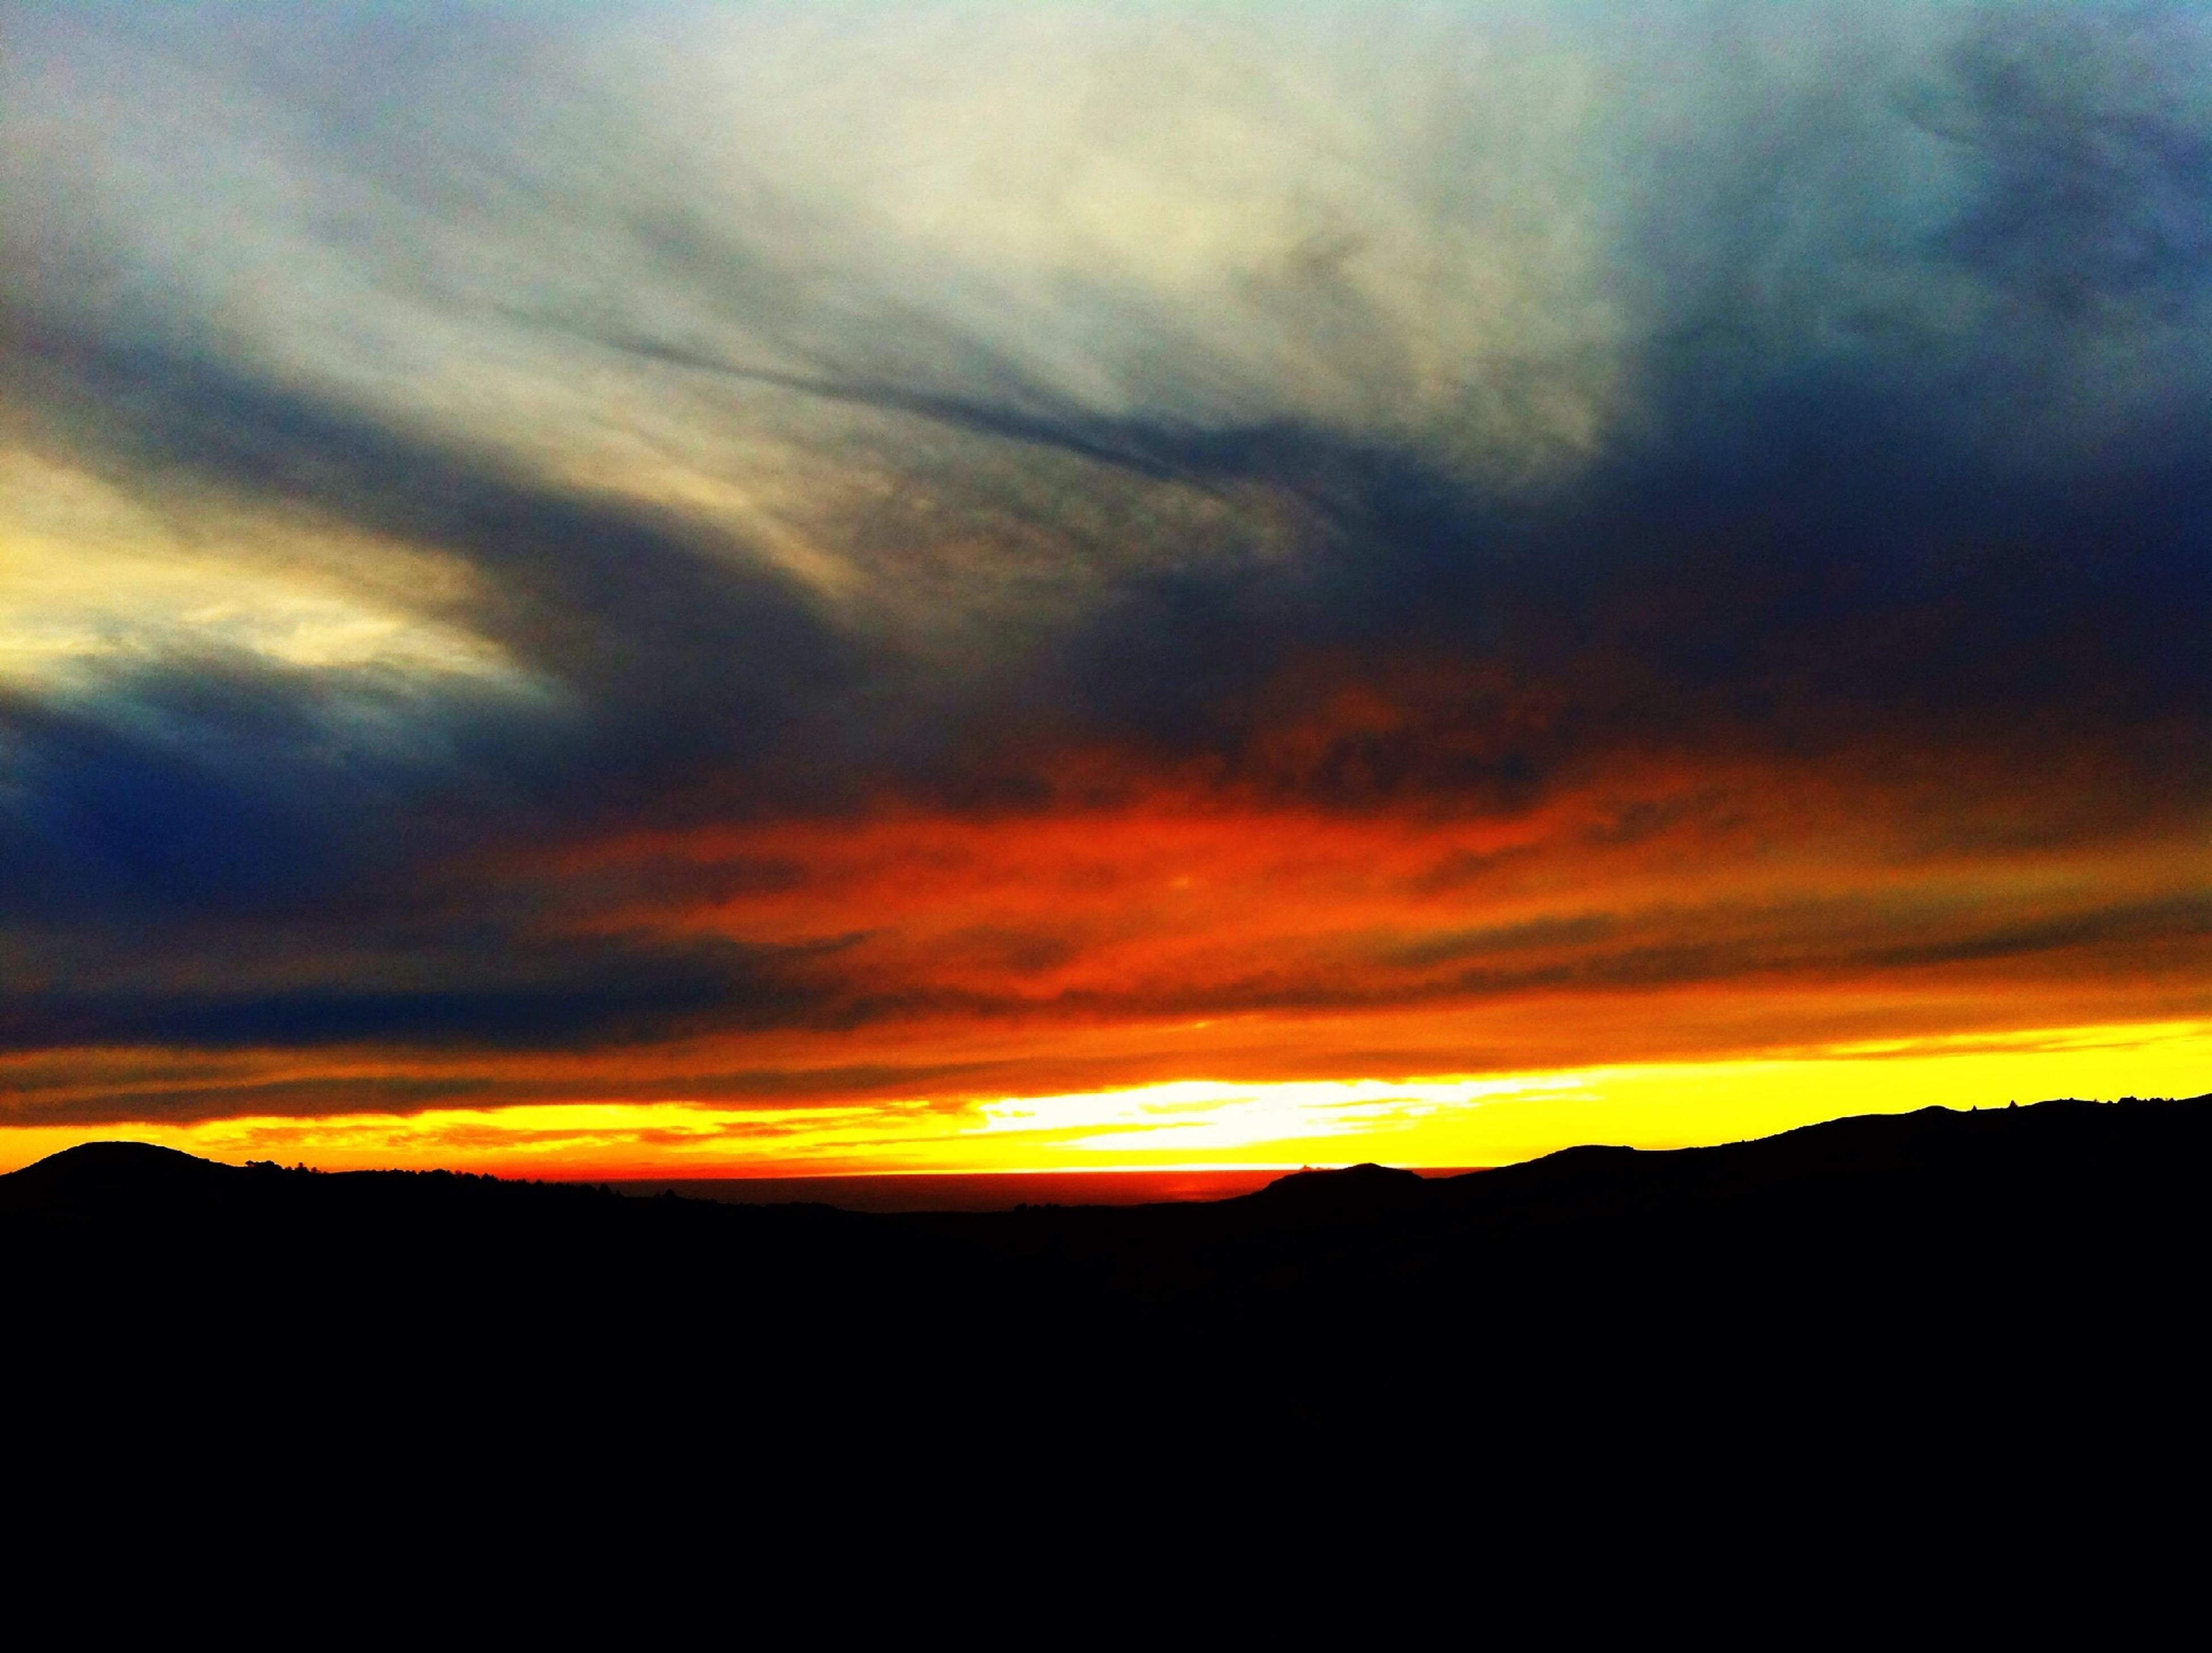 sunset, scenics, silhouette, tranquil scene, sky, beauty in nature, tranquility, orange color, cloud - sky, idyllic, dramatic sky, nature, landscape, cloud, mountain, majestic, cloudy, moody sky, atmospheric mood, outdoors